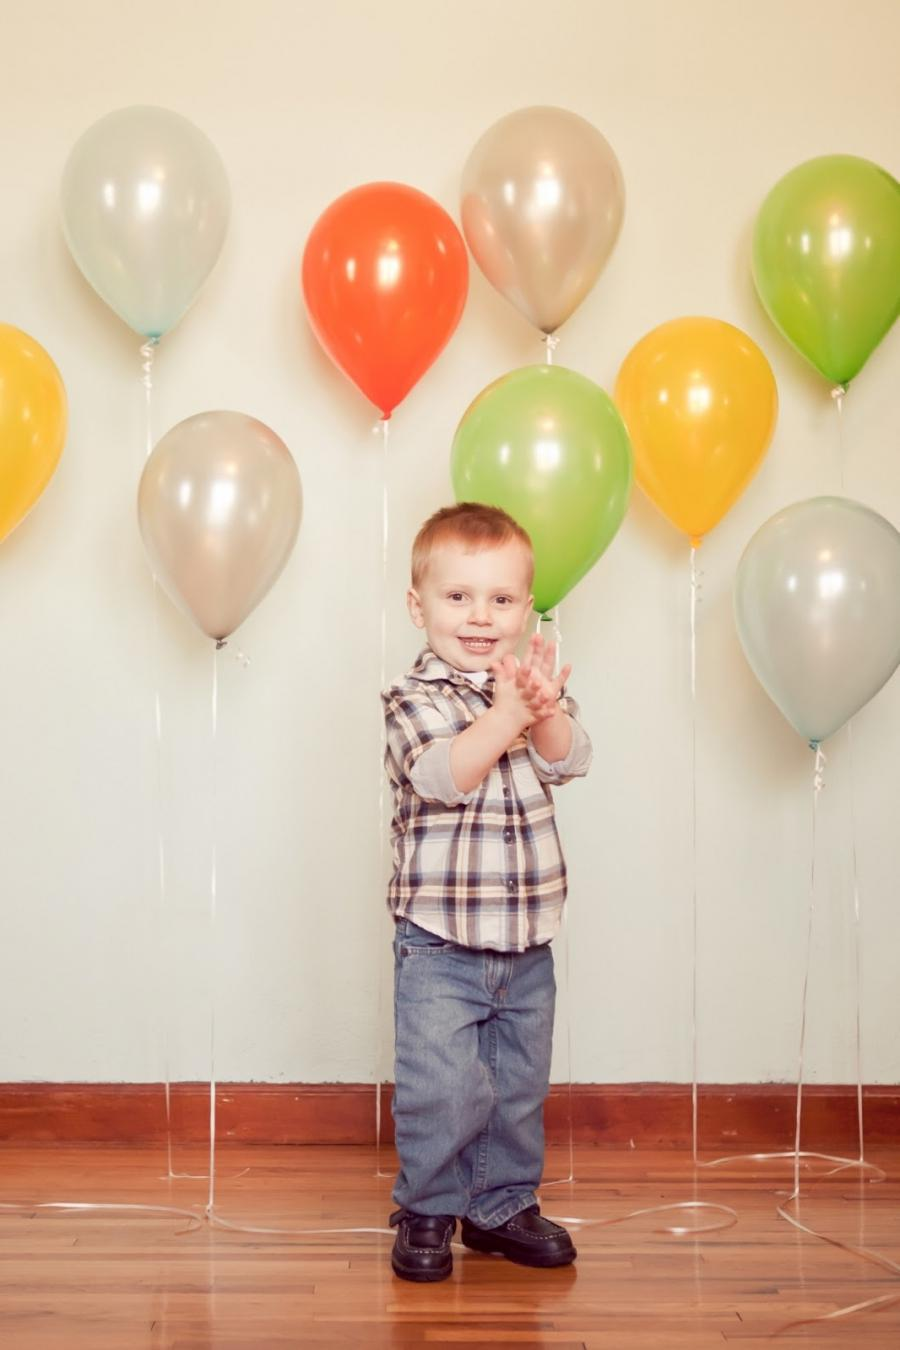 bridget, i love your little man  absolutely loved capturing his...